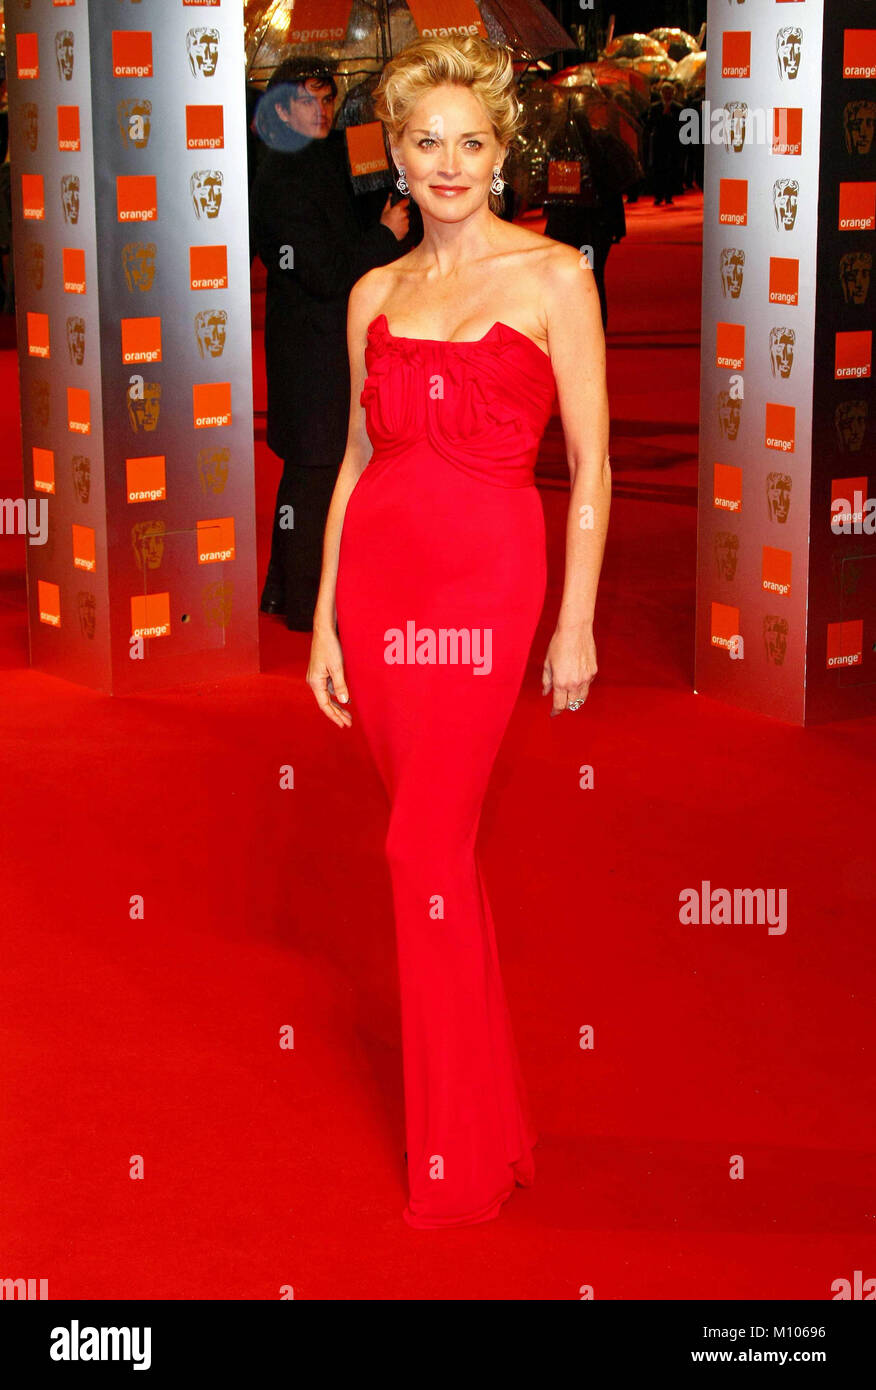 Bafta 2009 Stock Photos Images Alamy Jolie Clothing Aftan Dress Sharon Stone Arrives For The British Academy Of Film And Television Arts Annual